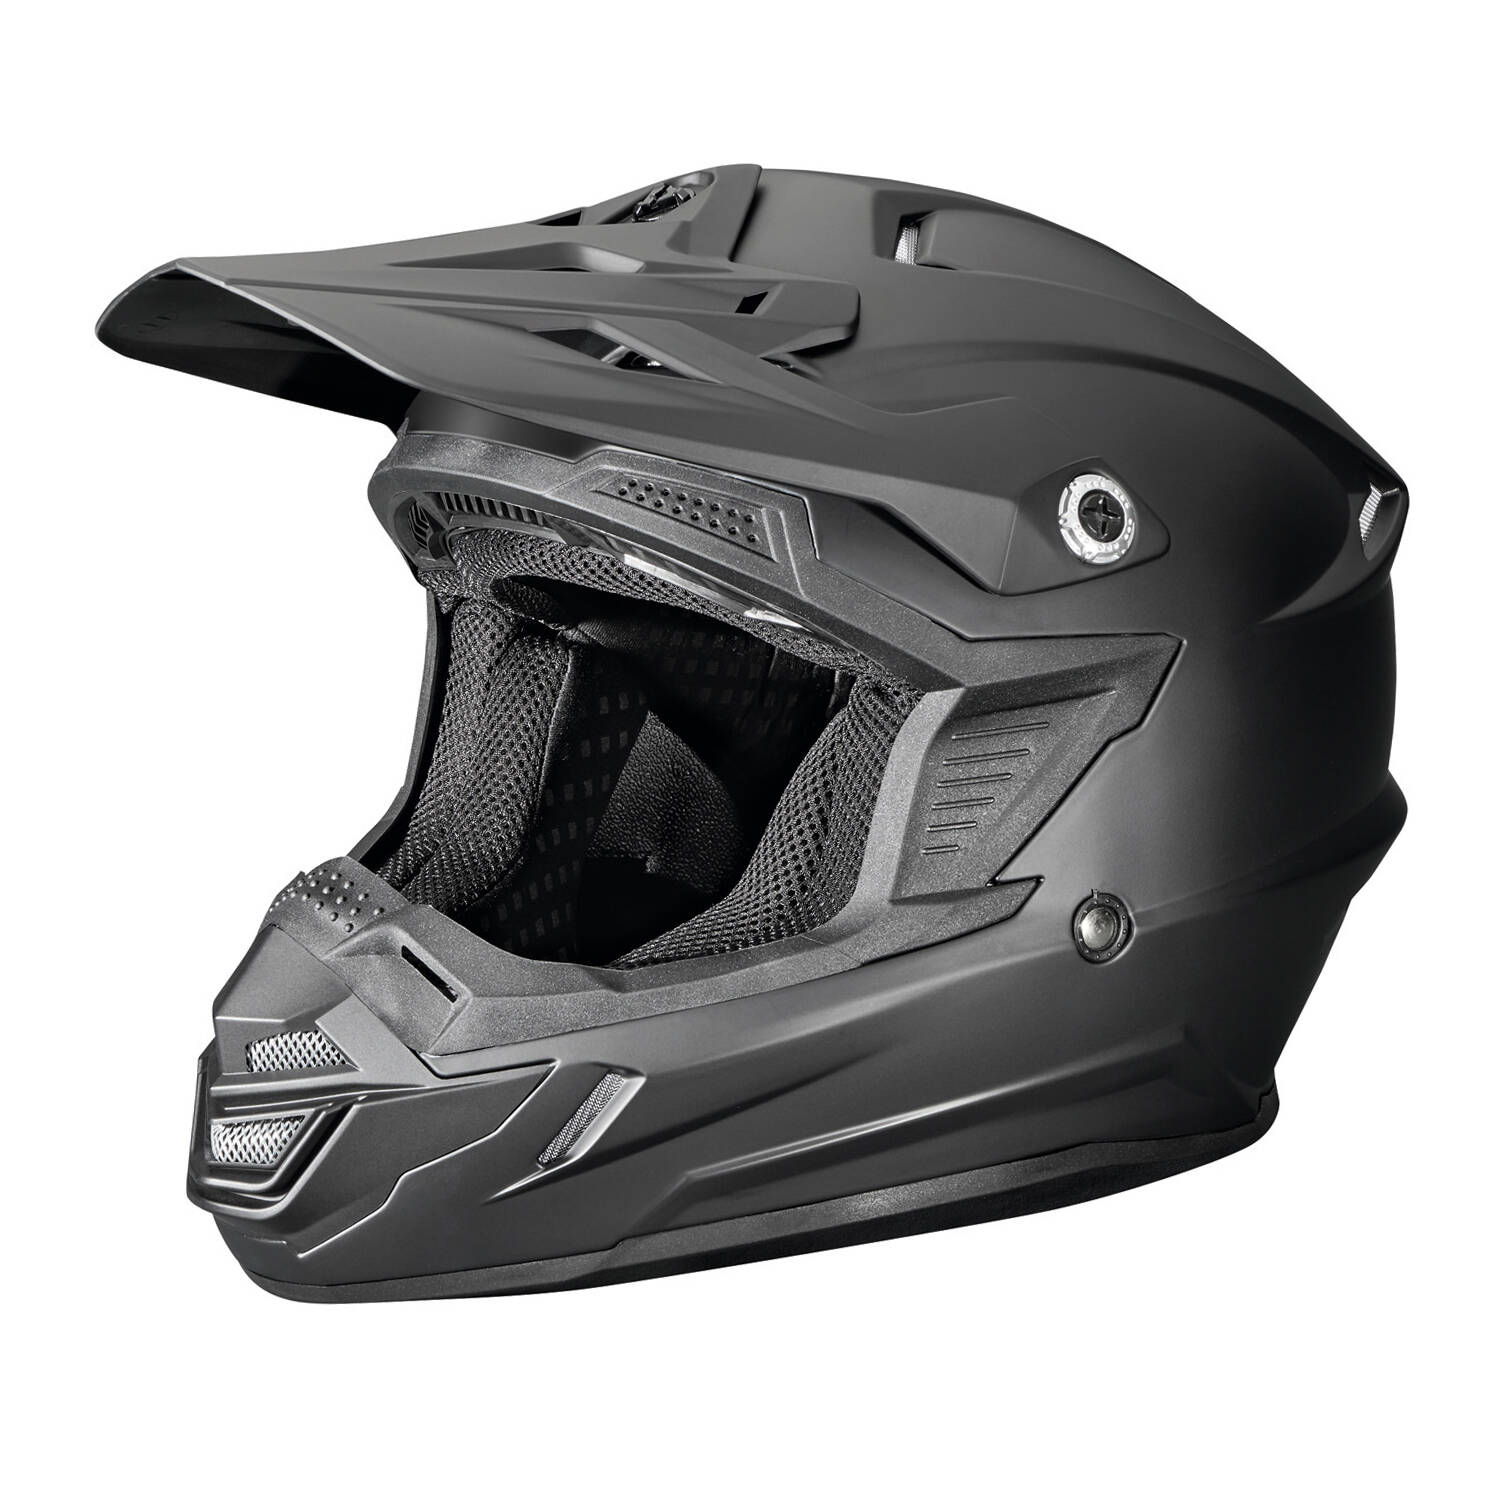 Tenacity Adult Moto Helmet with Removable Liner, Black